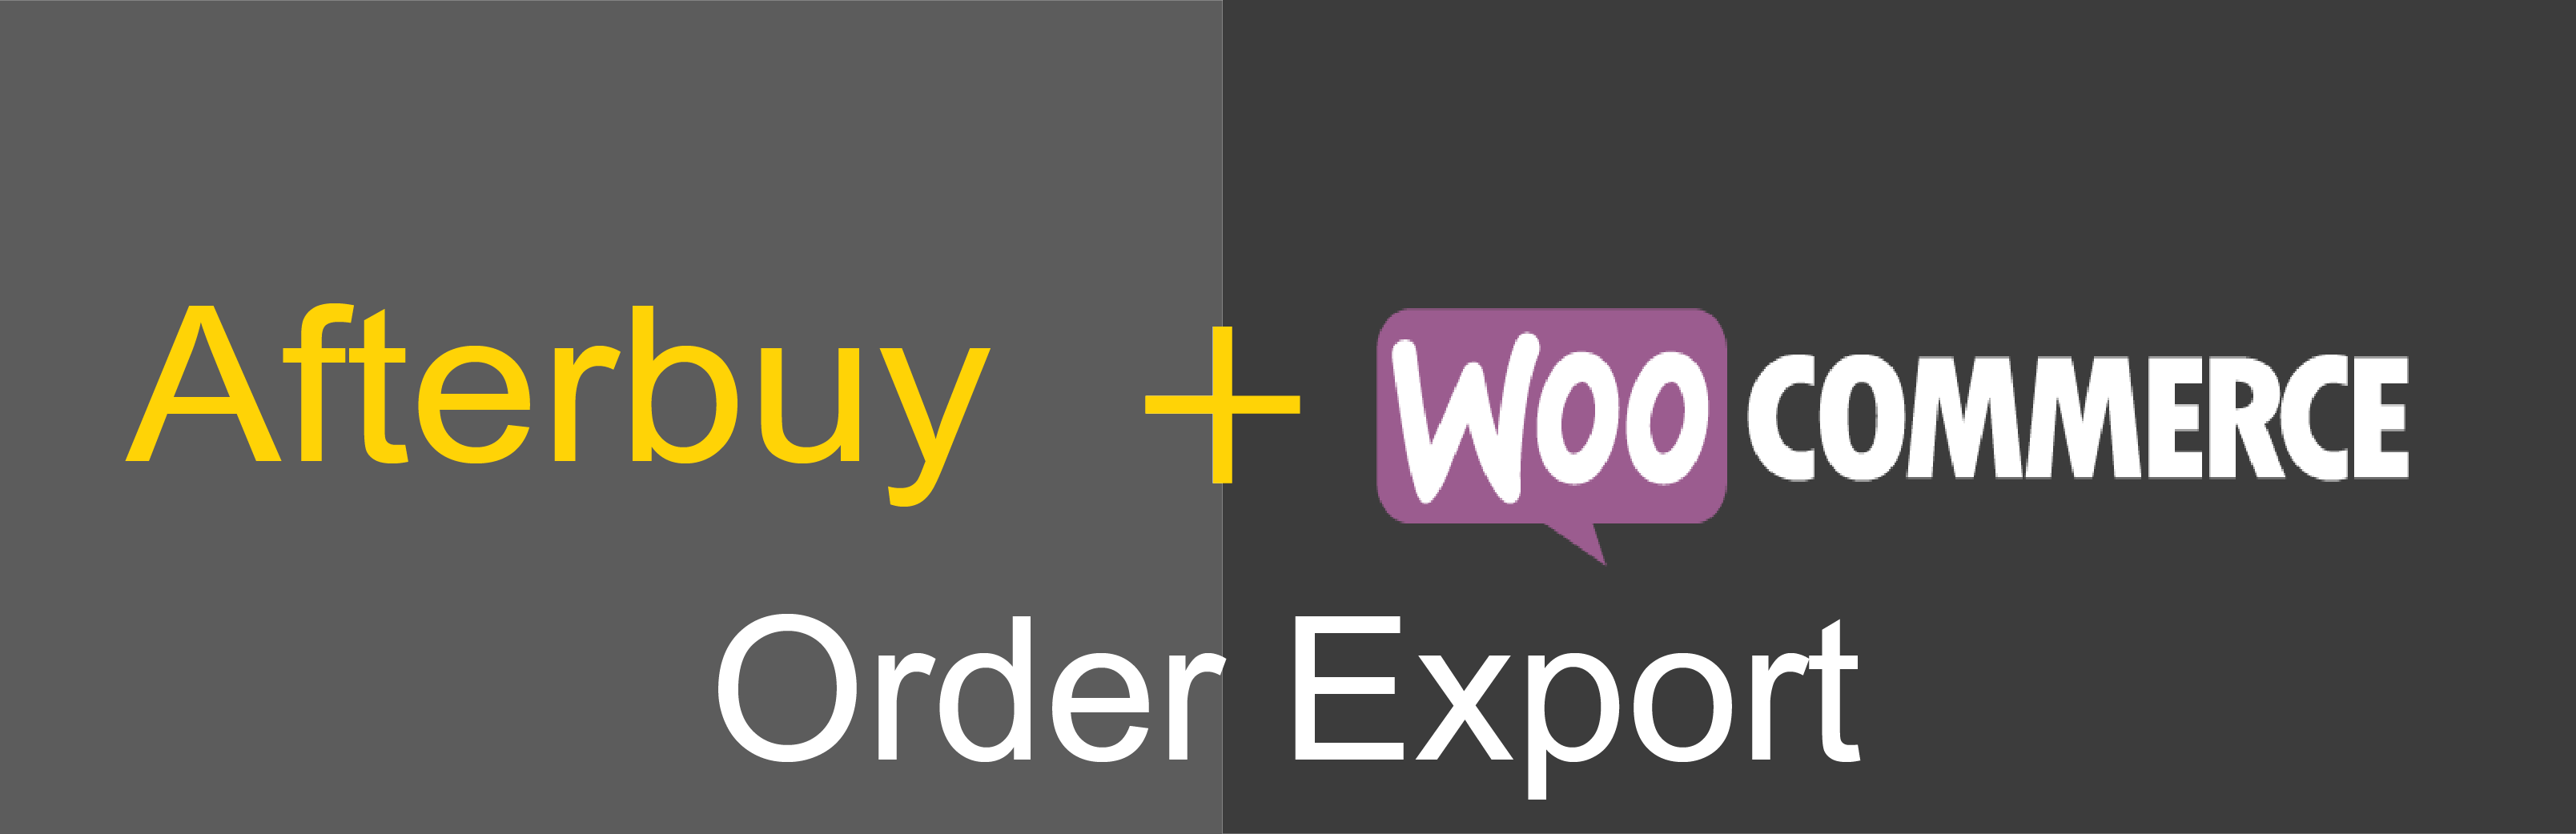 AfterWoo – Order Export to Afterbuy